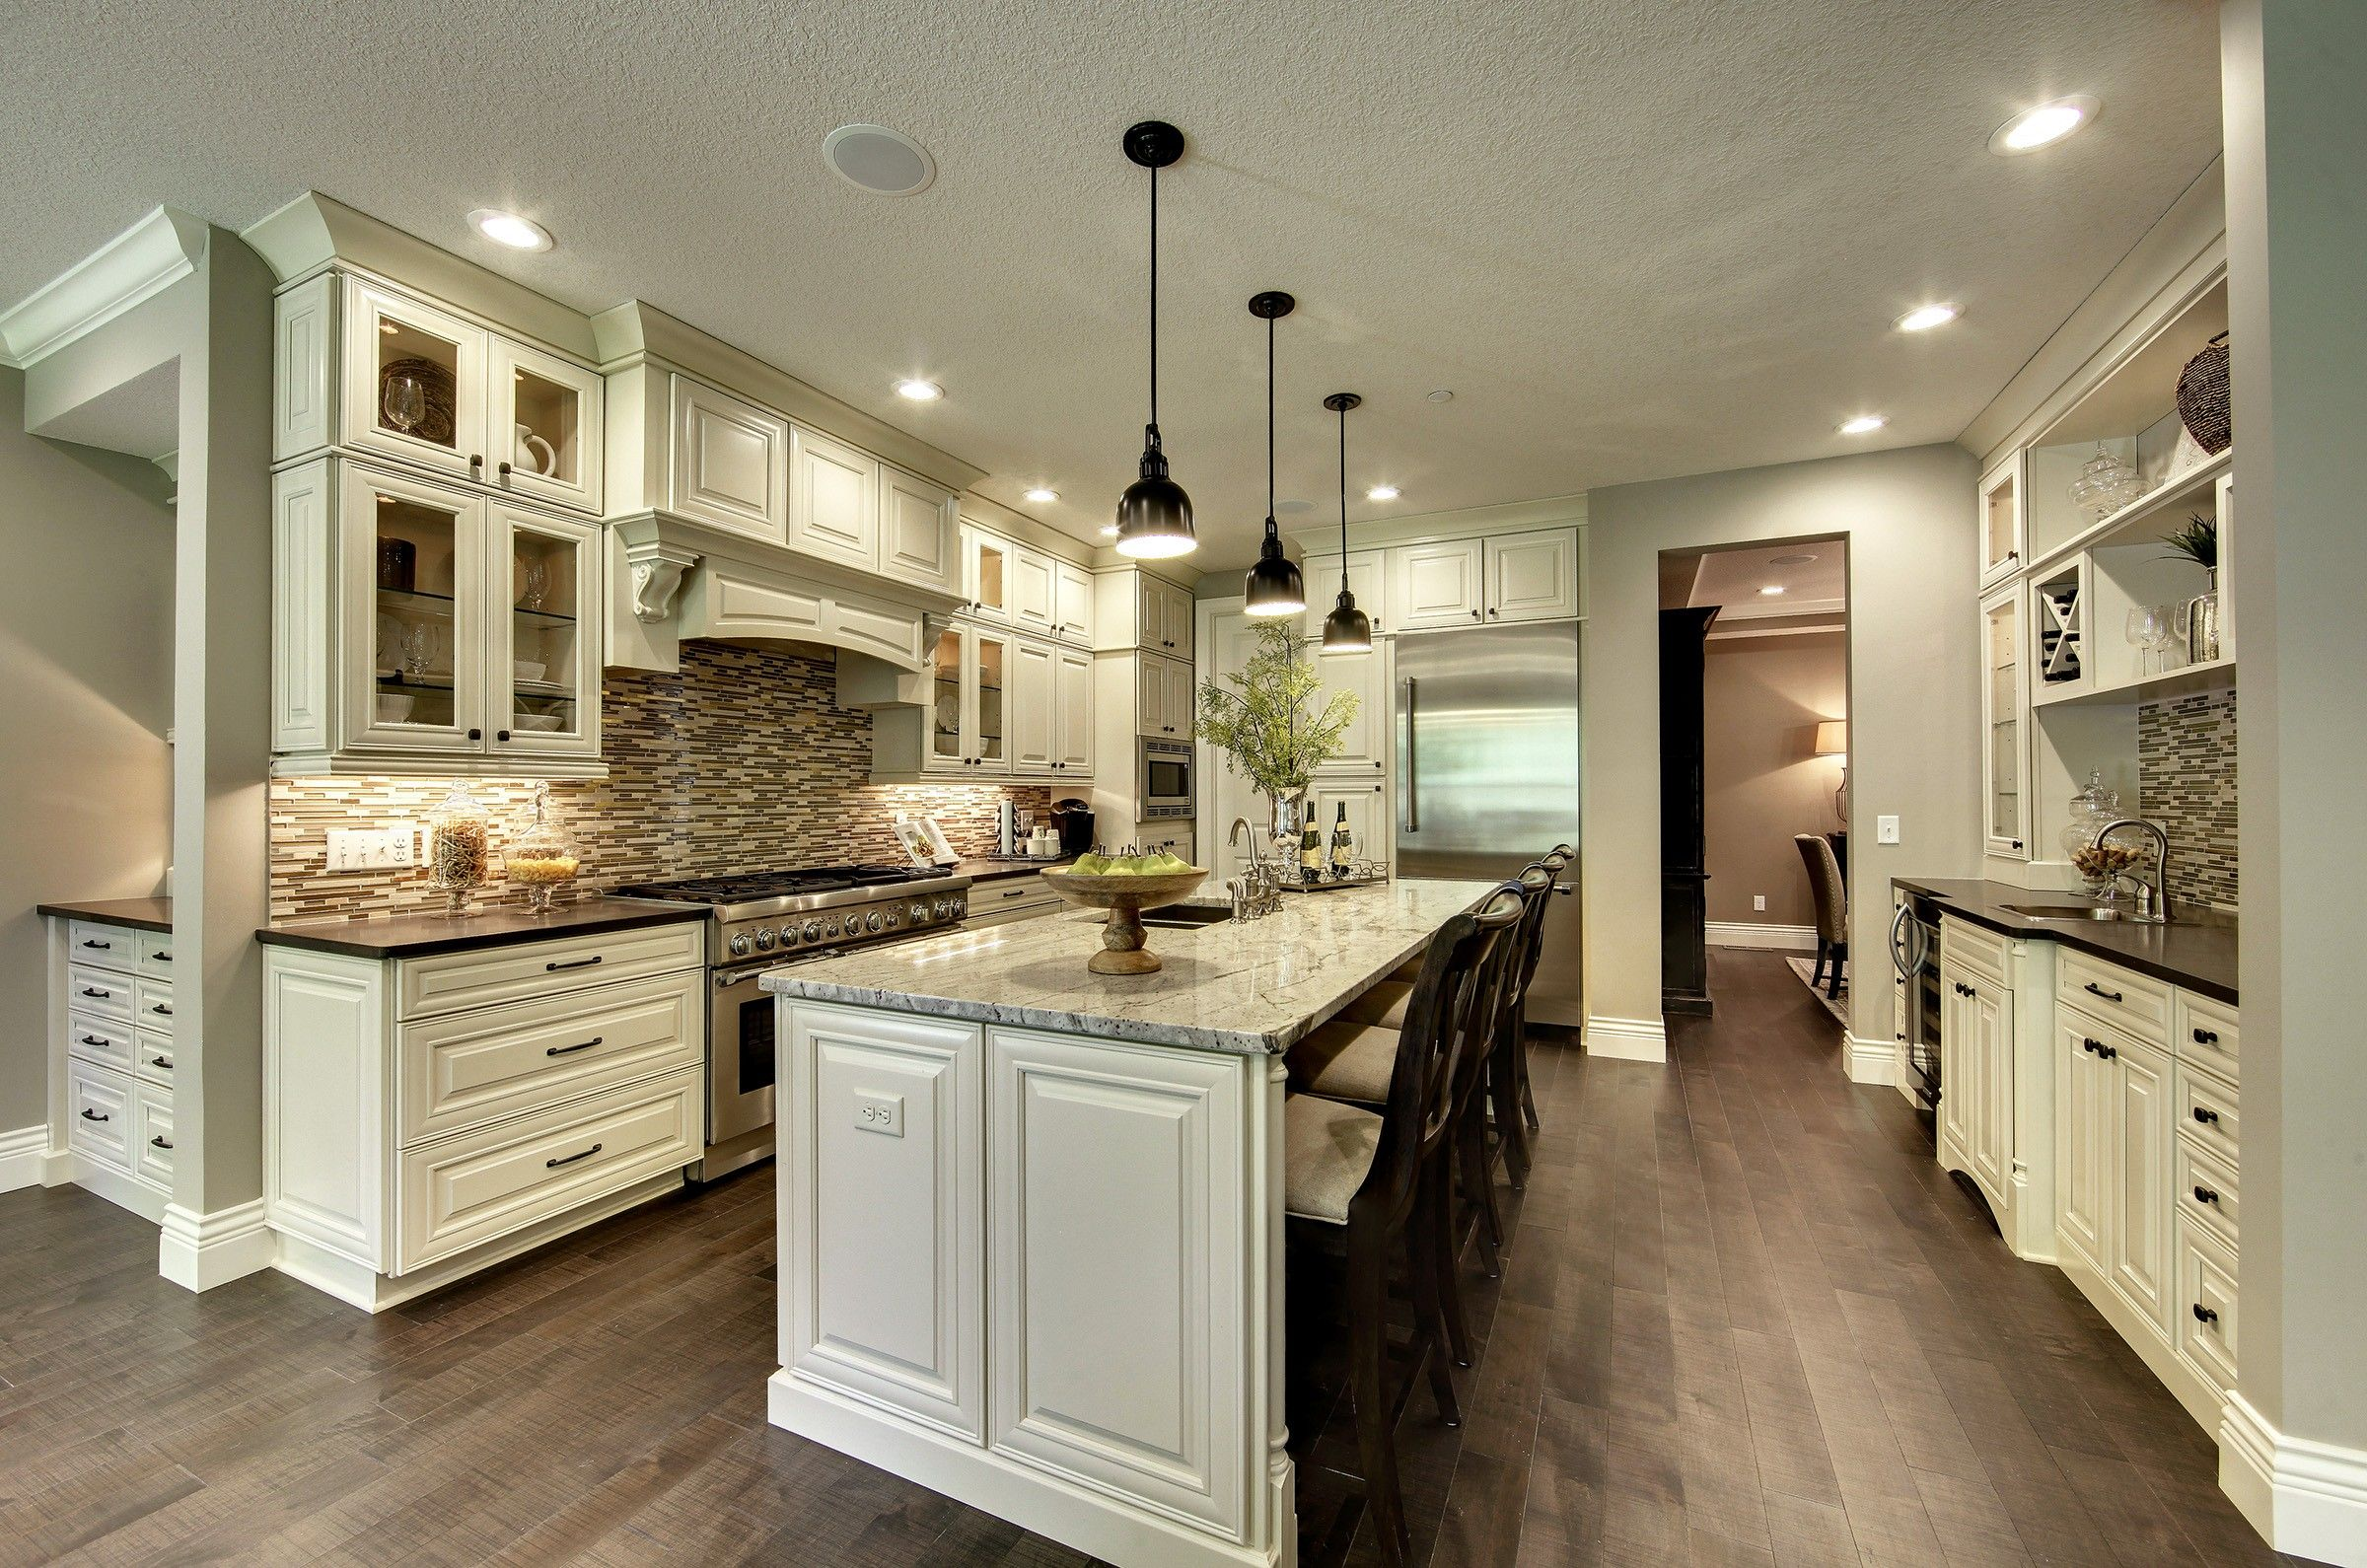 Kitchen Design Evanston delighful kitchen design evanston photo of jewelbox services on